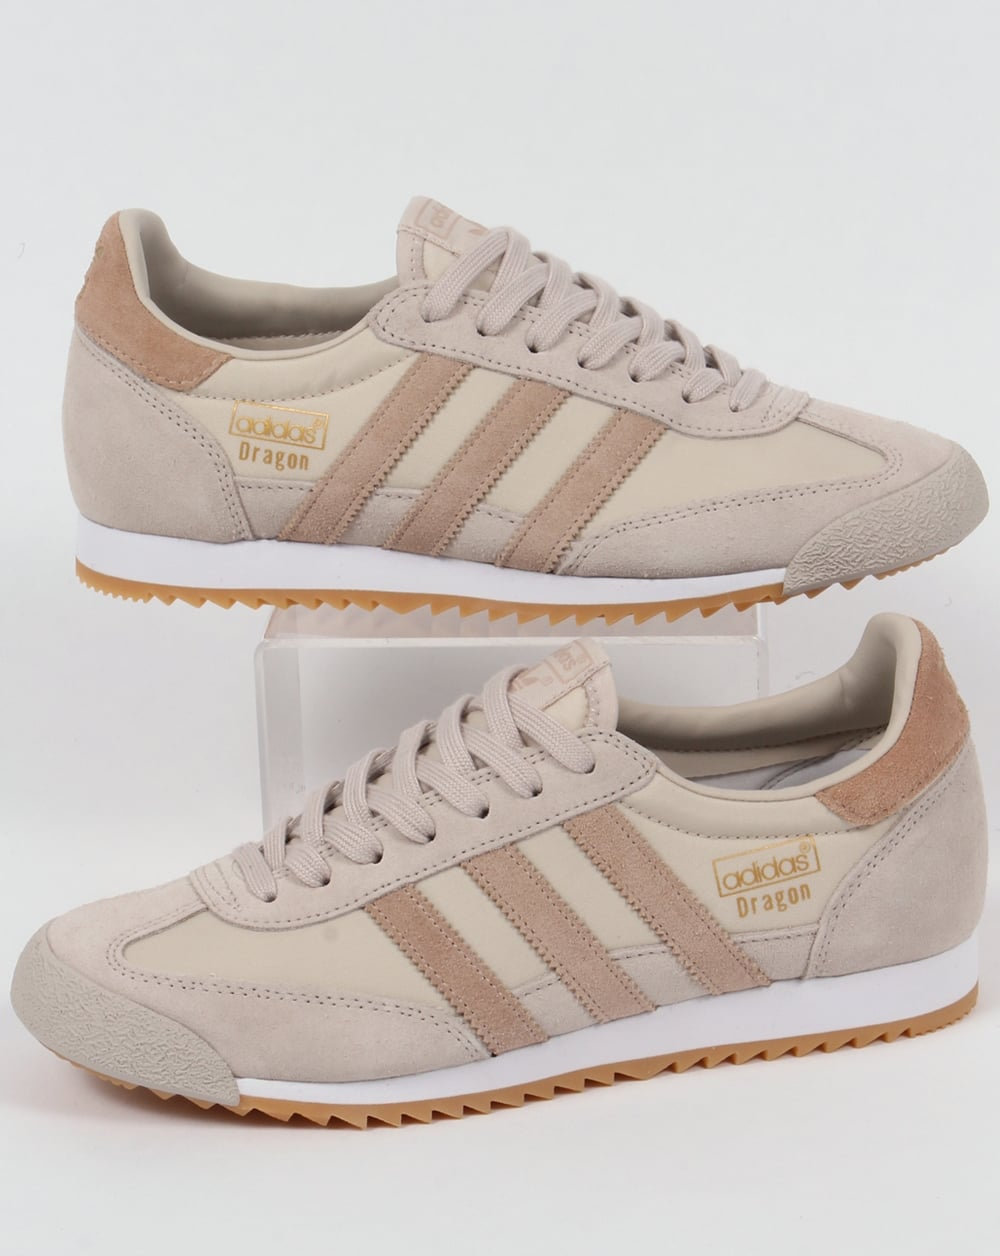 Adidas Dragon Trainers Clear Brown/Clay